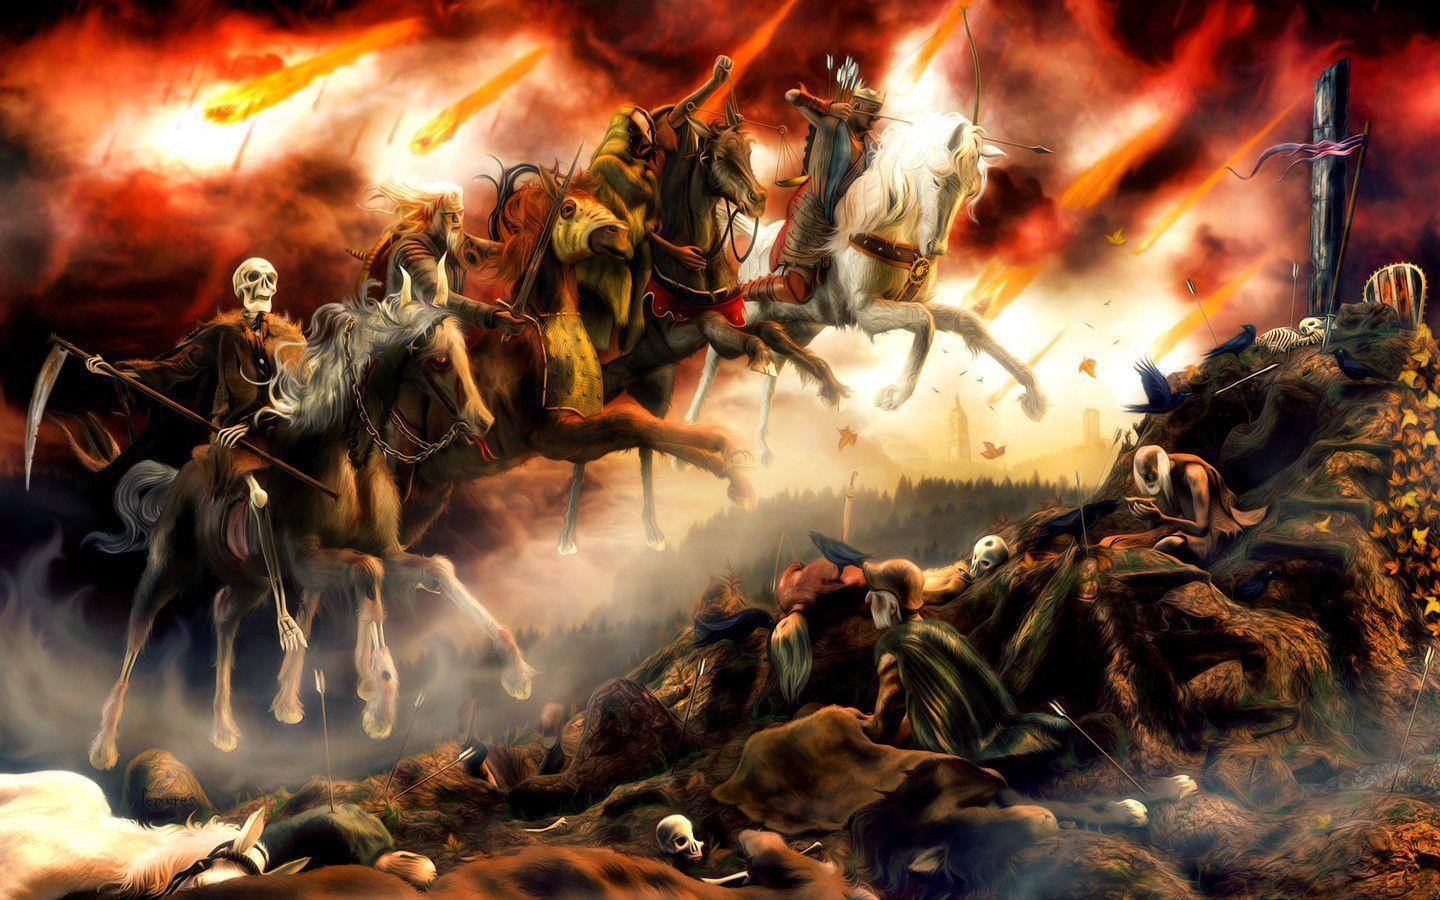 Top Black Horse Of Revelation 6 Wallpapers 1440x900